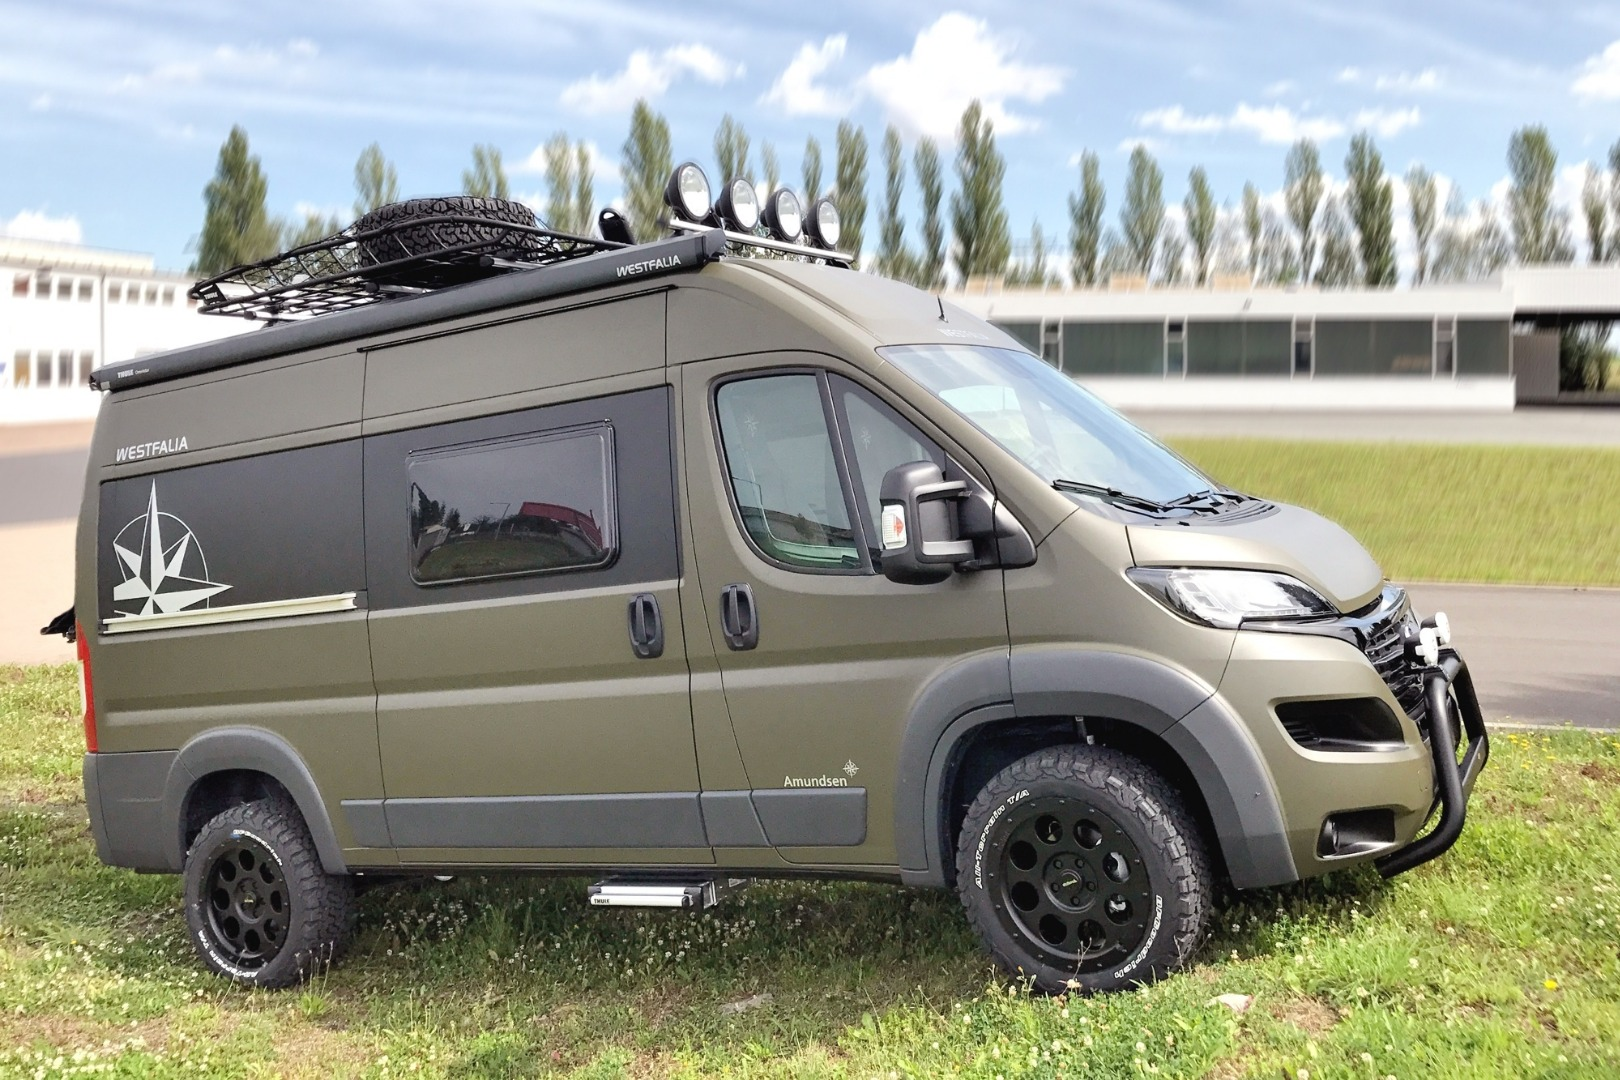 Offroad Westfalia camper van follows the compass toward the dirt, rock and unknown